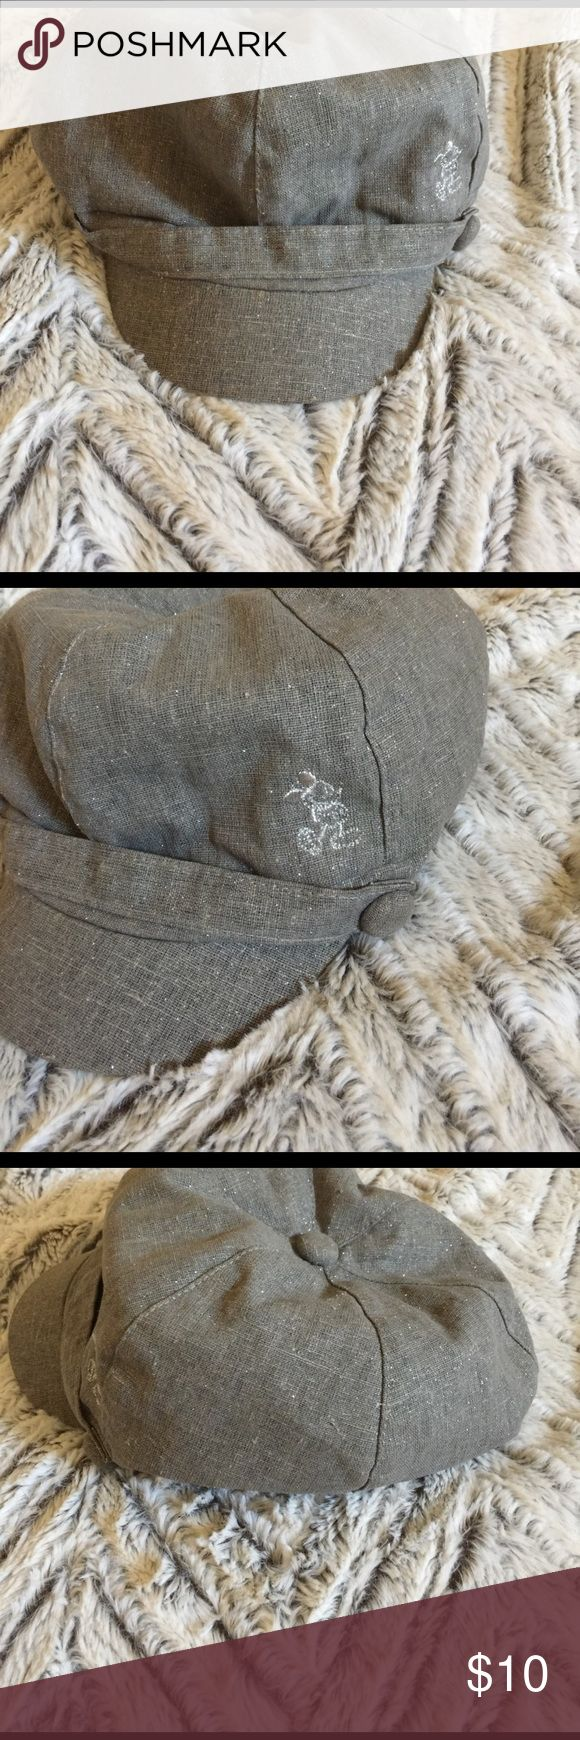 Disneyland hat Disney mickey mouse gray hat with mickey on the side Accessories Hats